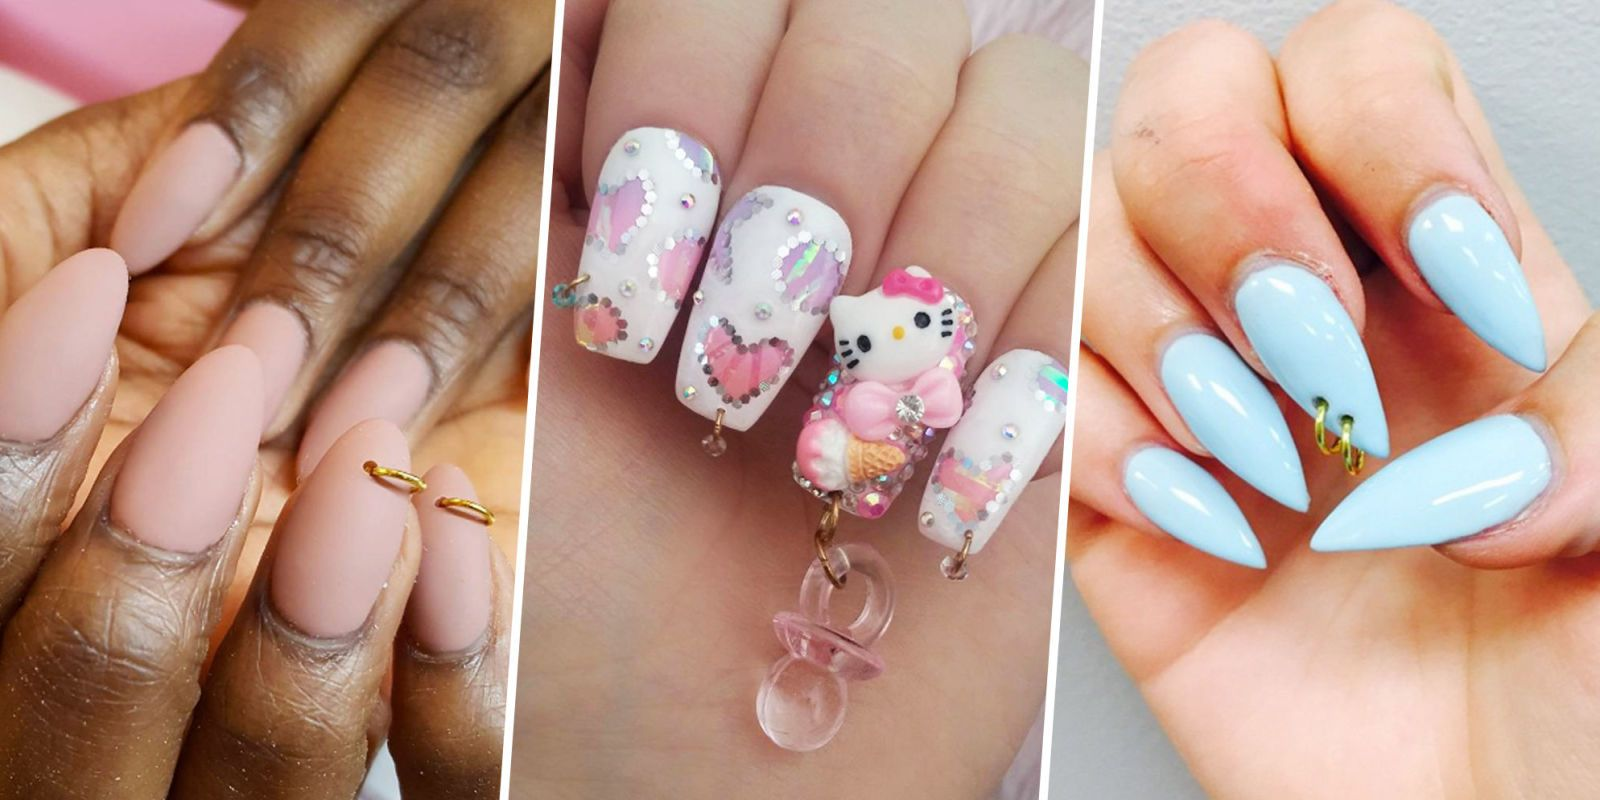 The Nail Piercing Trend Is Peak '90s—And We're Here for It